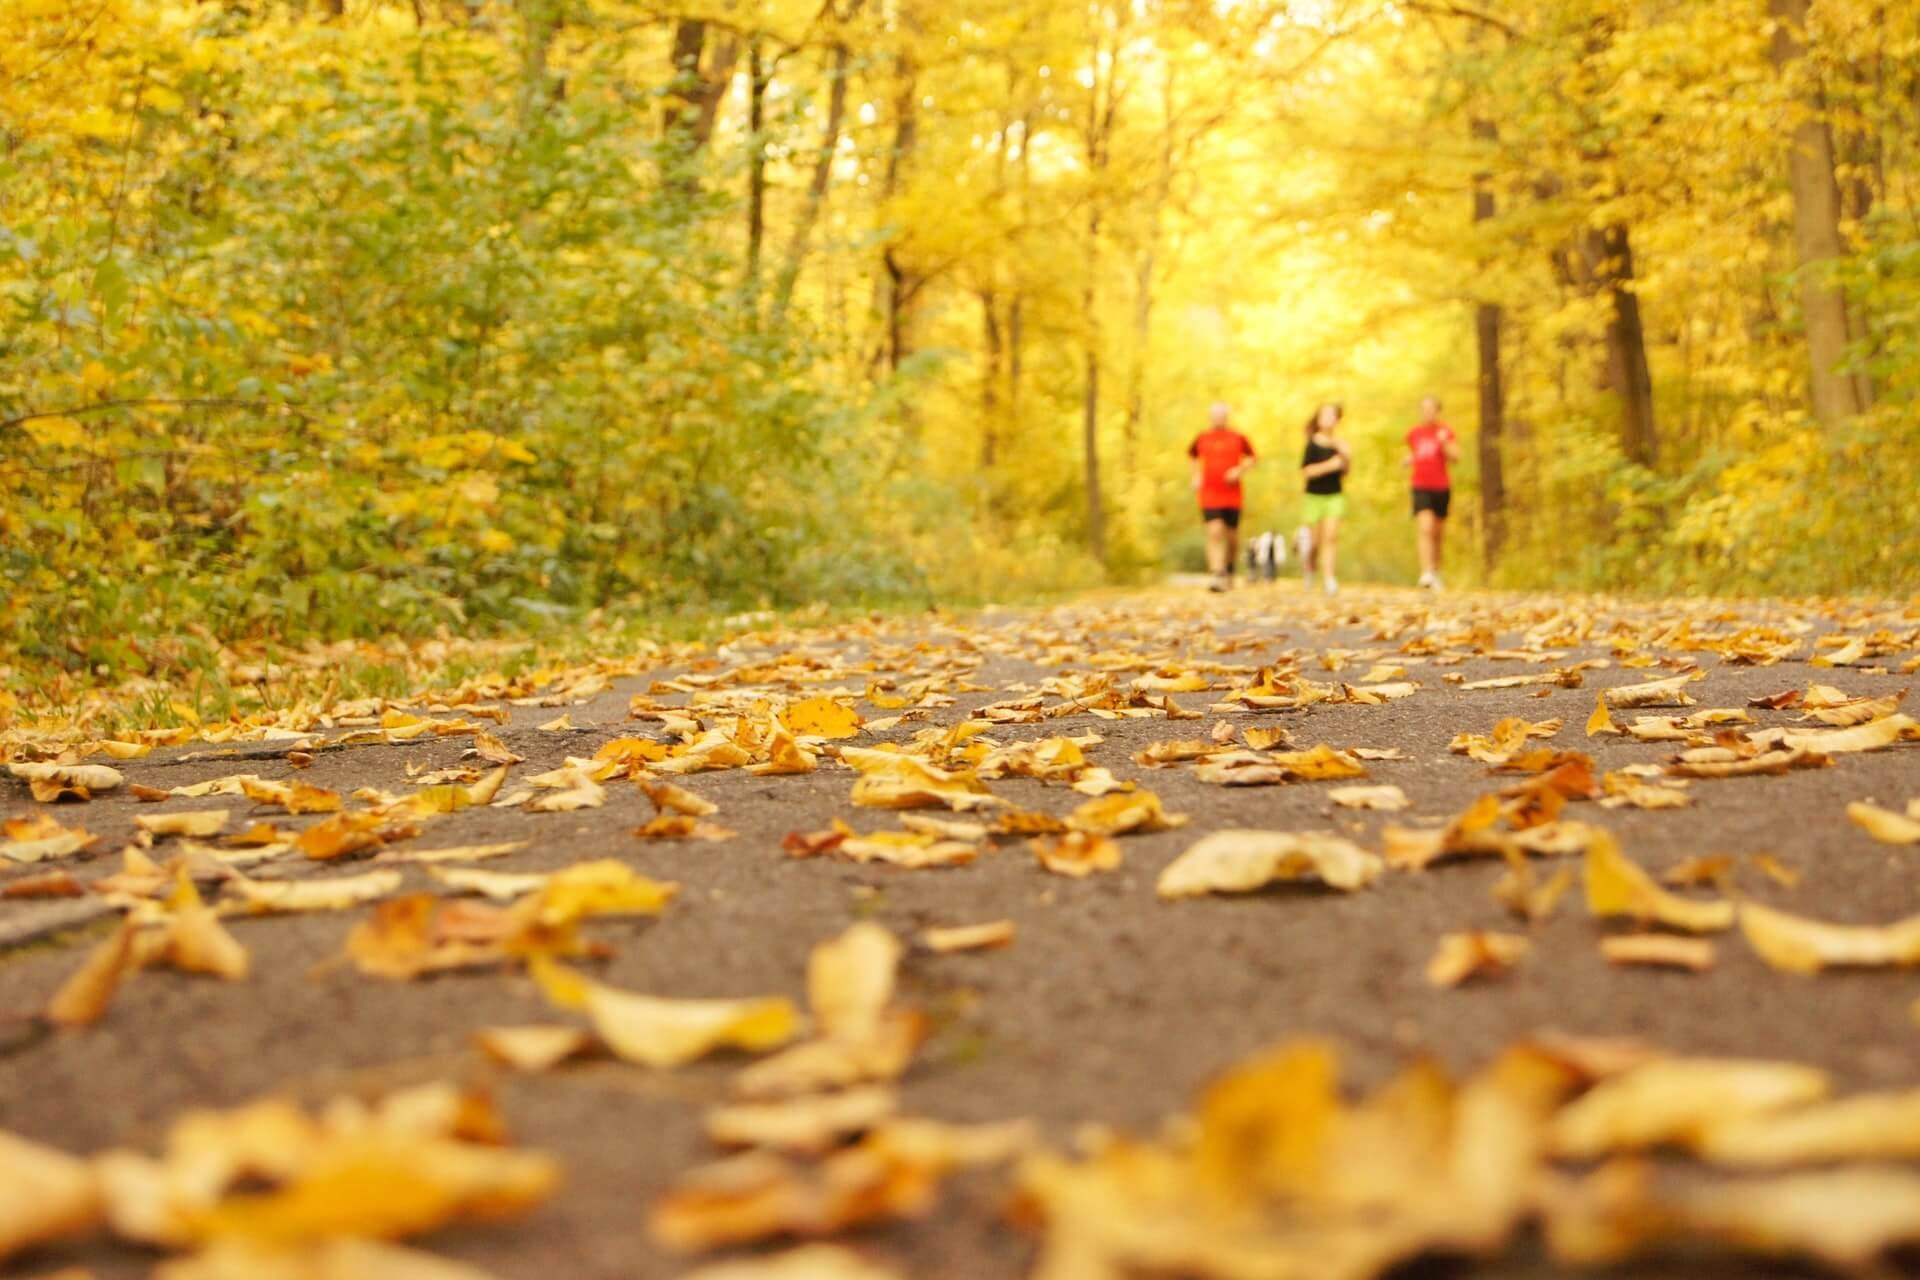 Brown leaves on the ground with people running on the background